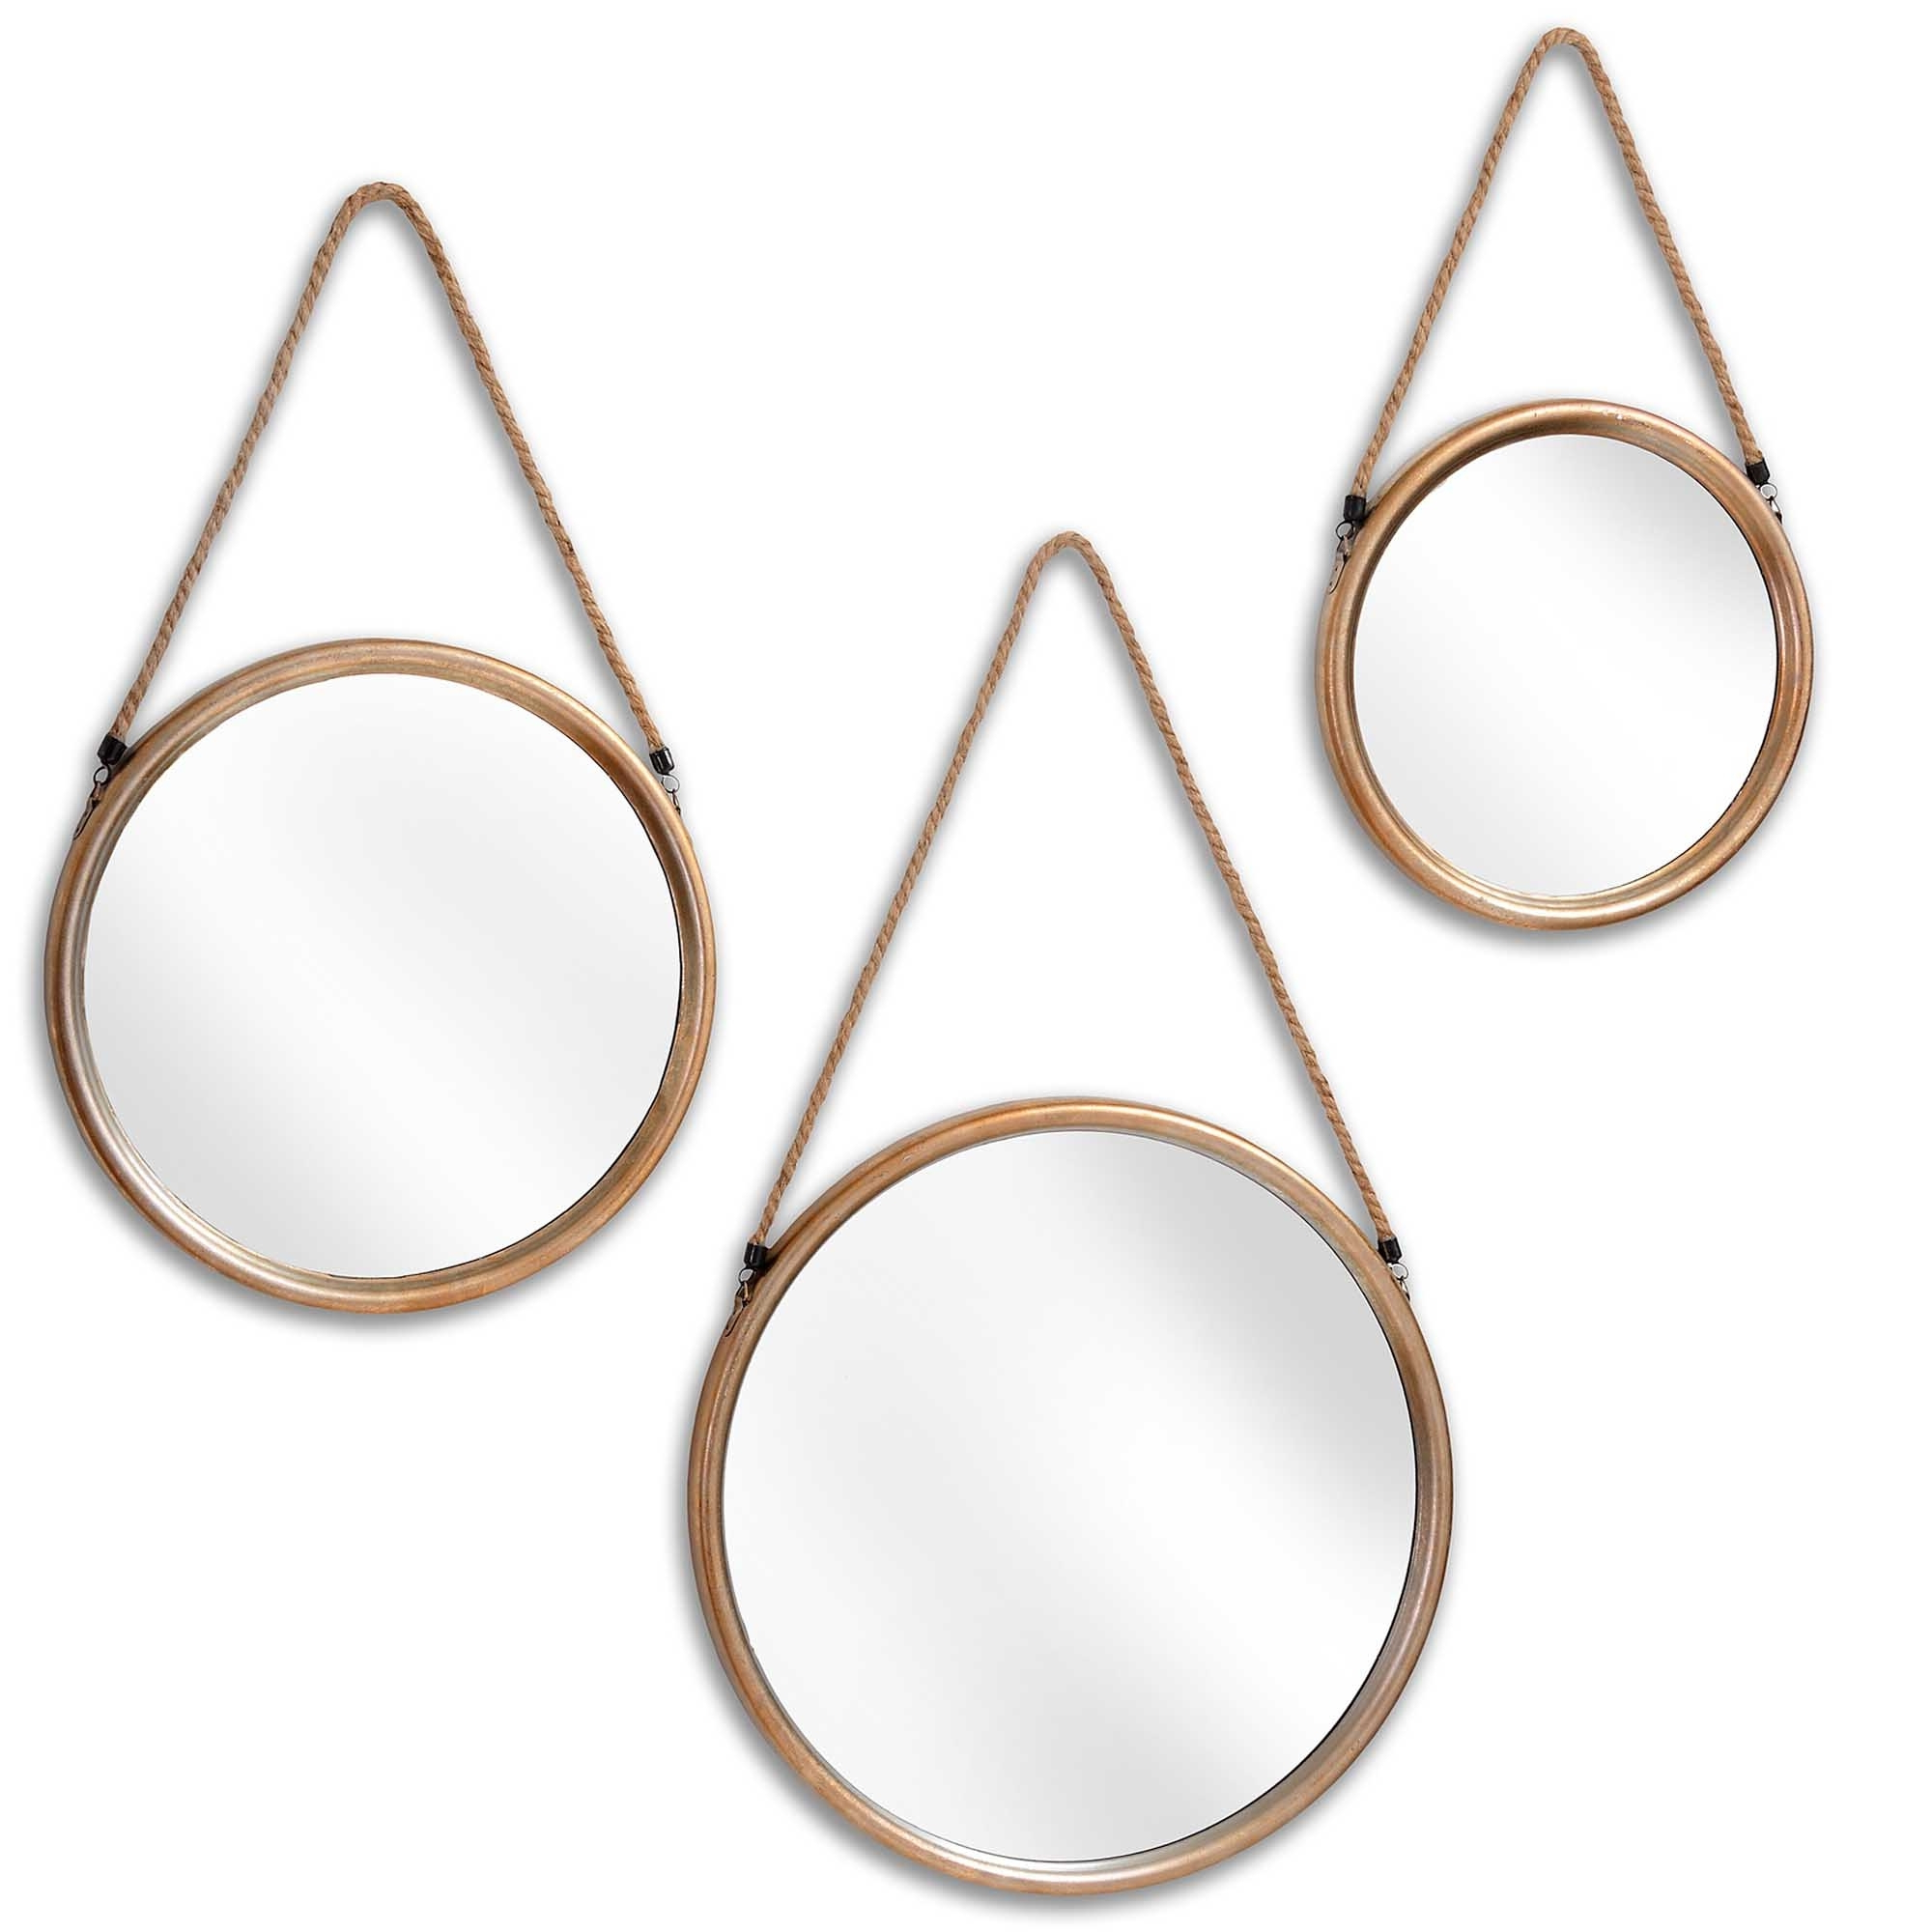 Set Of 3 Hanging Round Gold Wall Mirrors Pertaining To Popular Hang Wall Mirrors (Gallery 16 of 20)